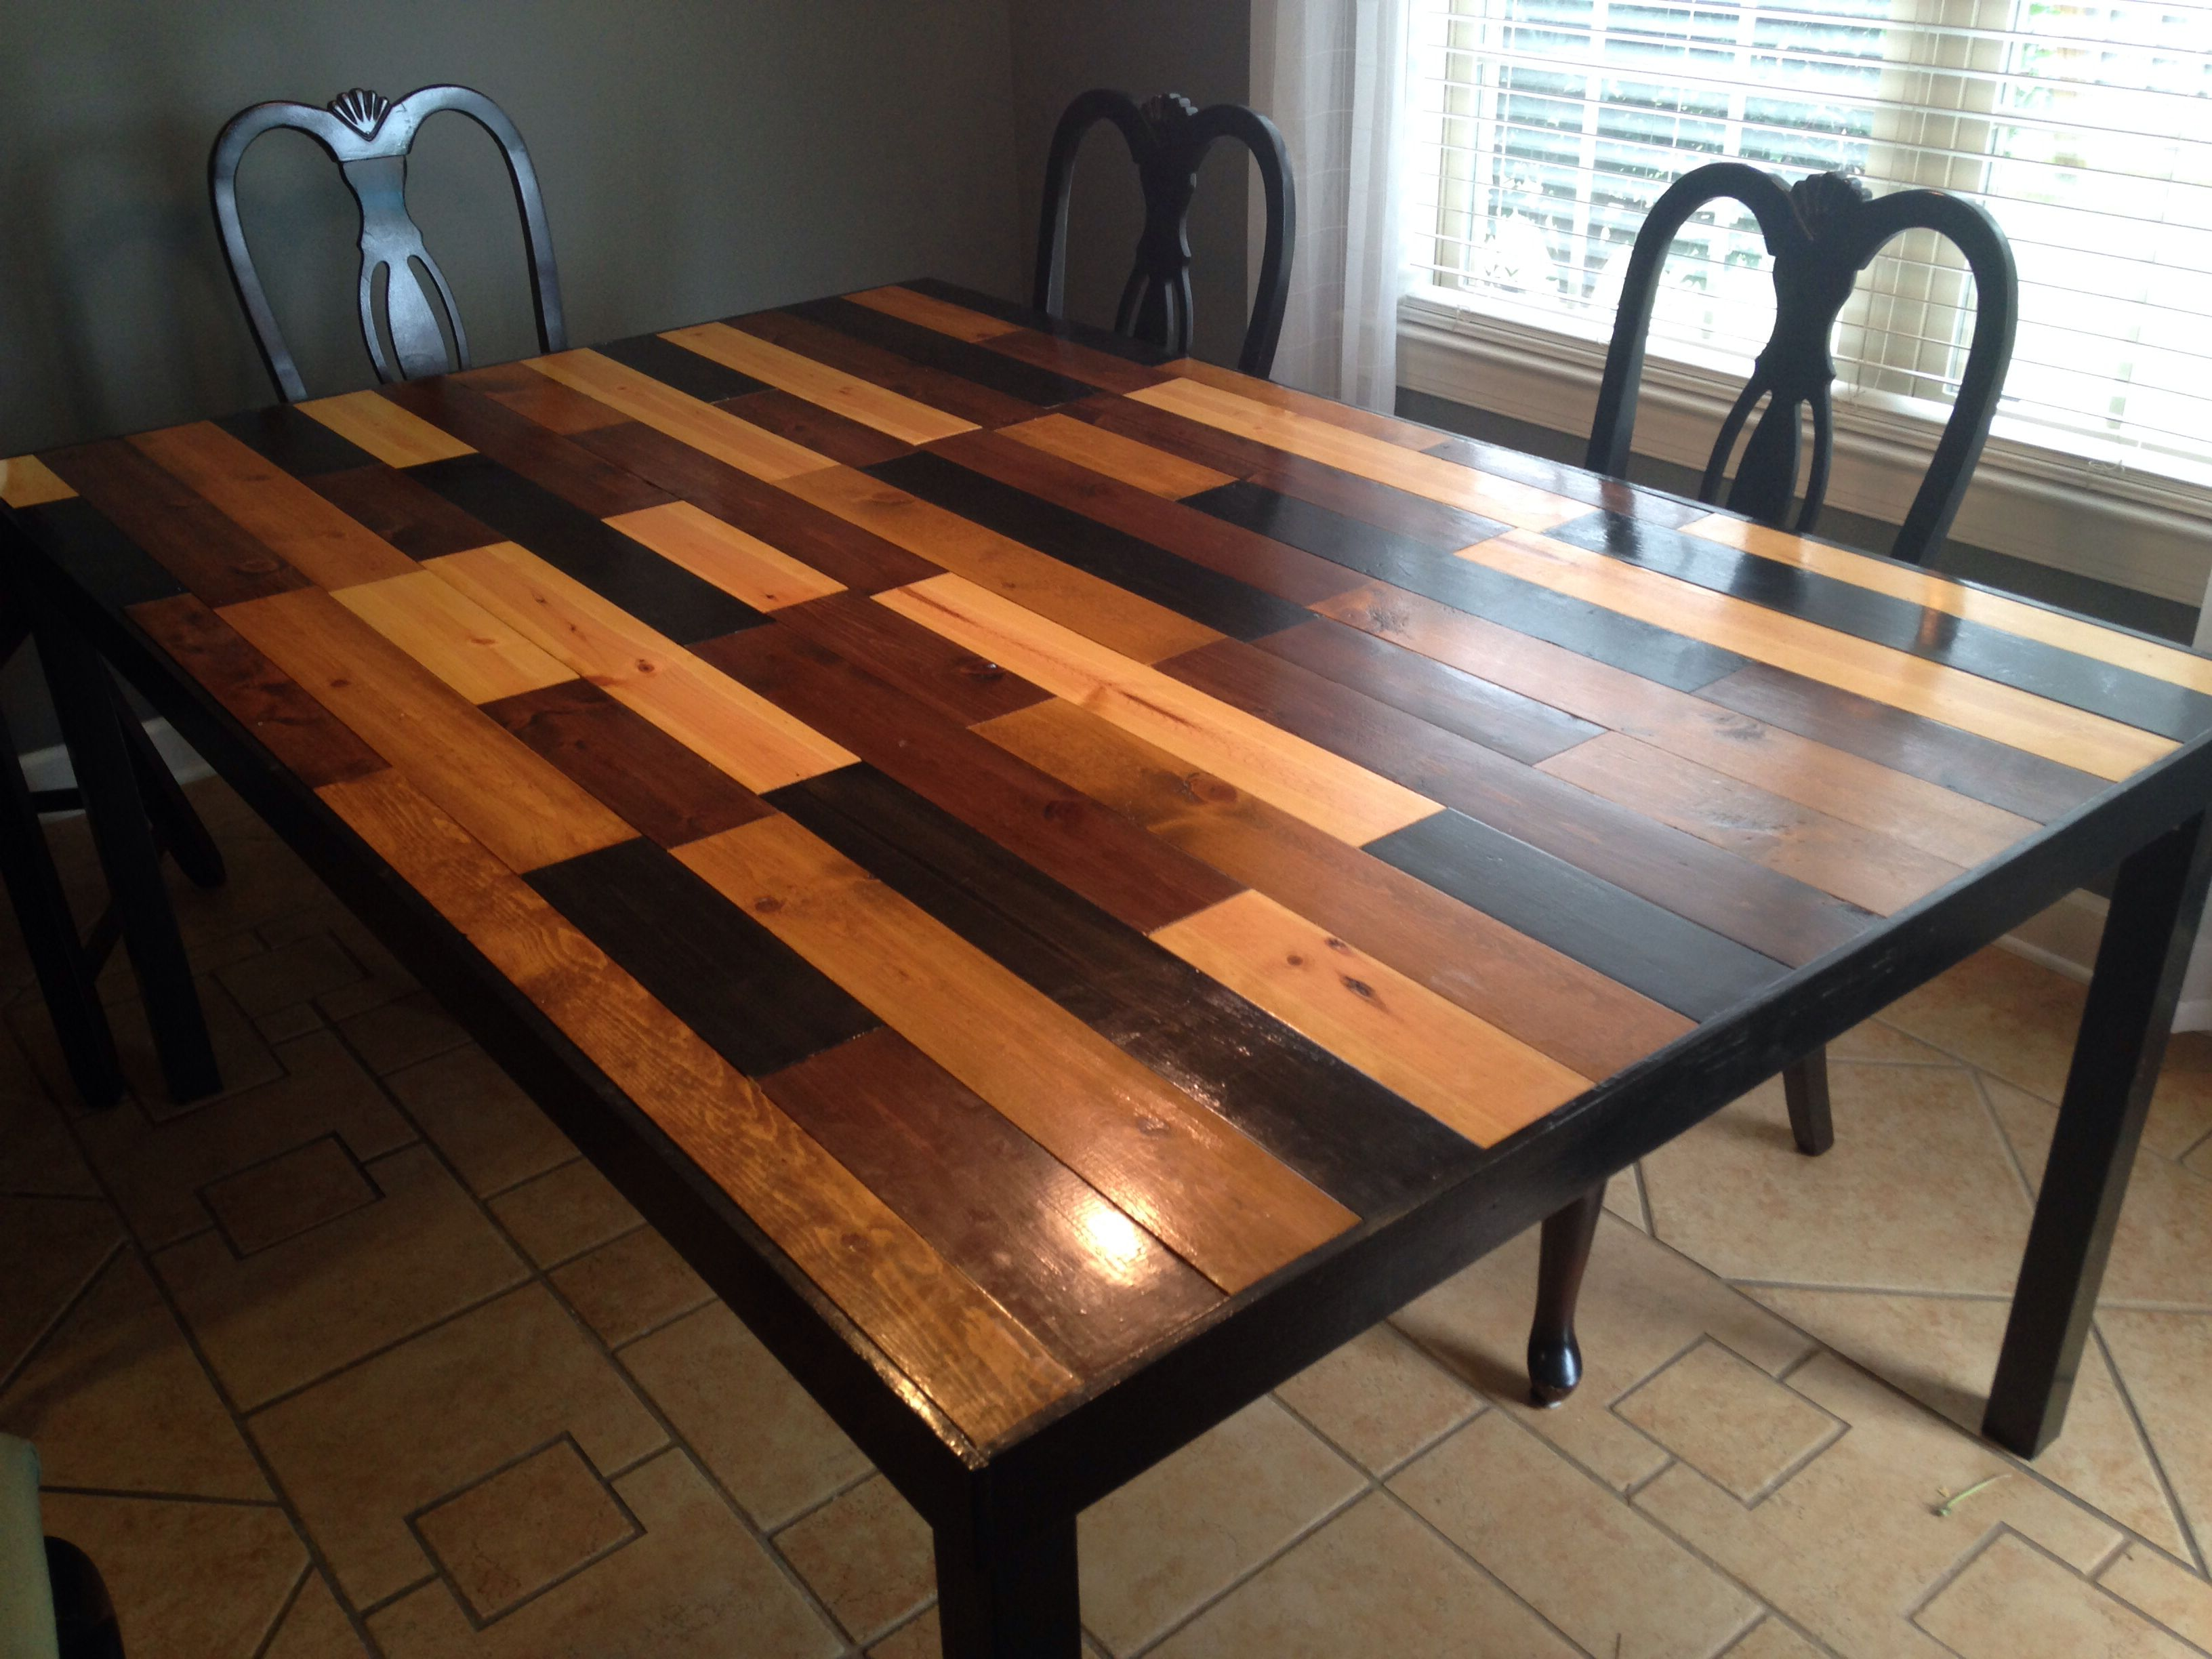 Used Kitchen Tables Commercial Island Handmade Table Scandal Inspired Stained 1x4 In 4 Colors 12 Ft Boards And Then Cut Distributed On No Order